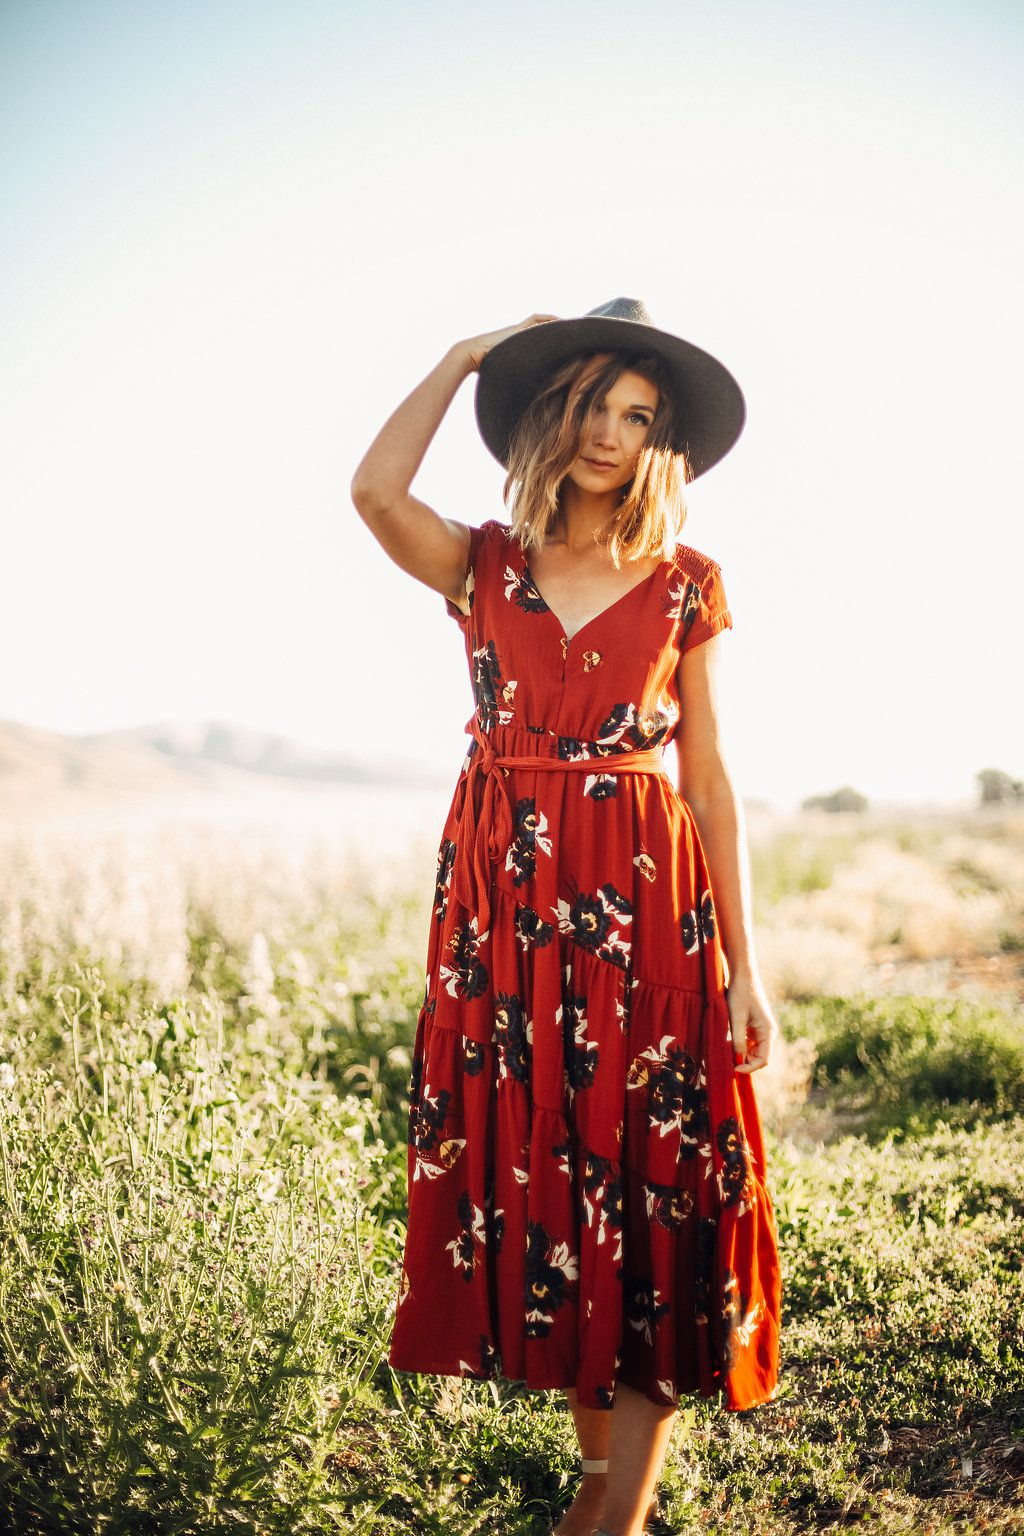 dde1f50f184 FREE PEOPLE  ALL I GOT PRINTED MAXI DRESS IN RED COMBO   DRESSES   WOMENS  CLOTHING